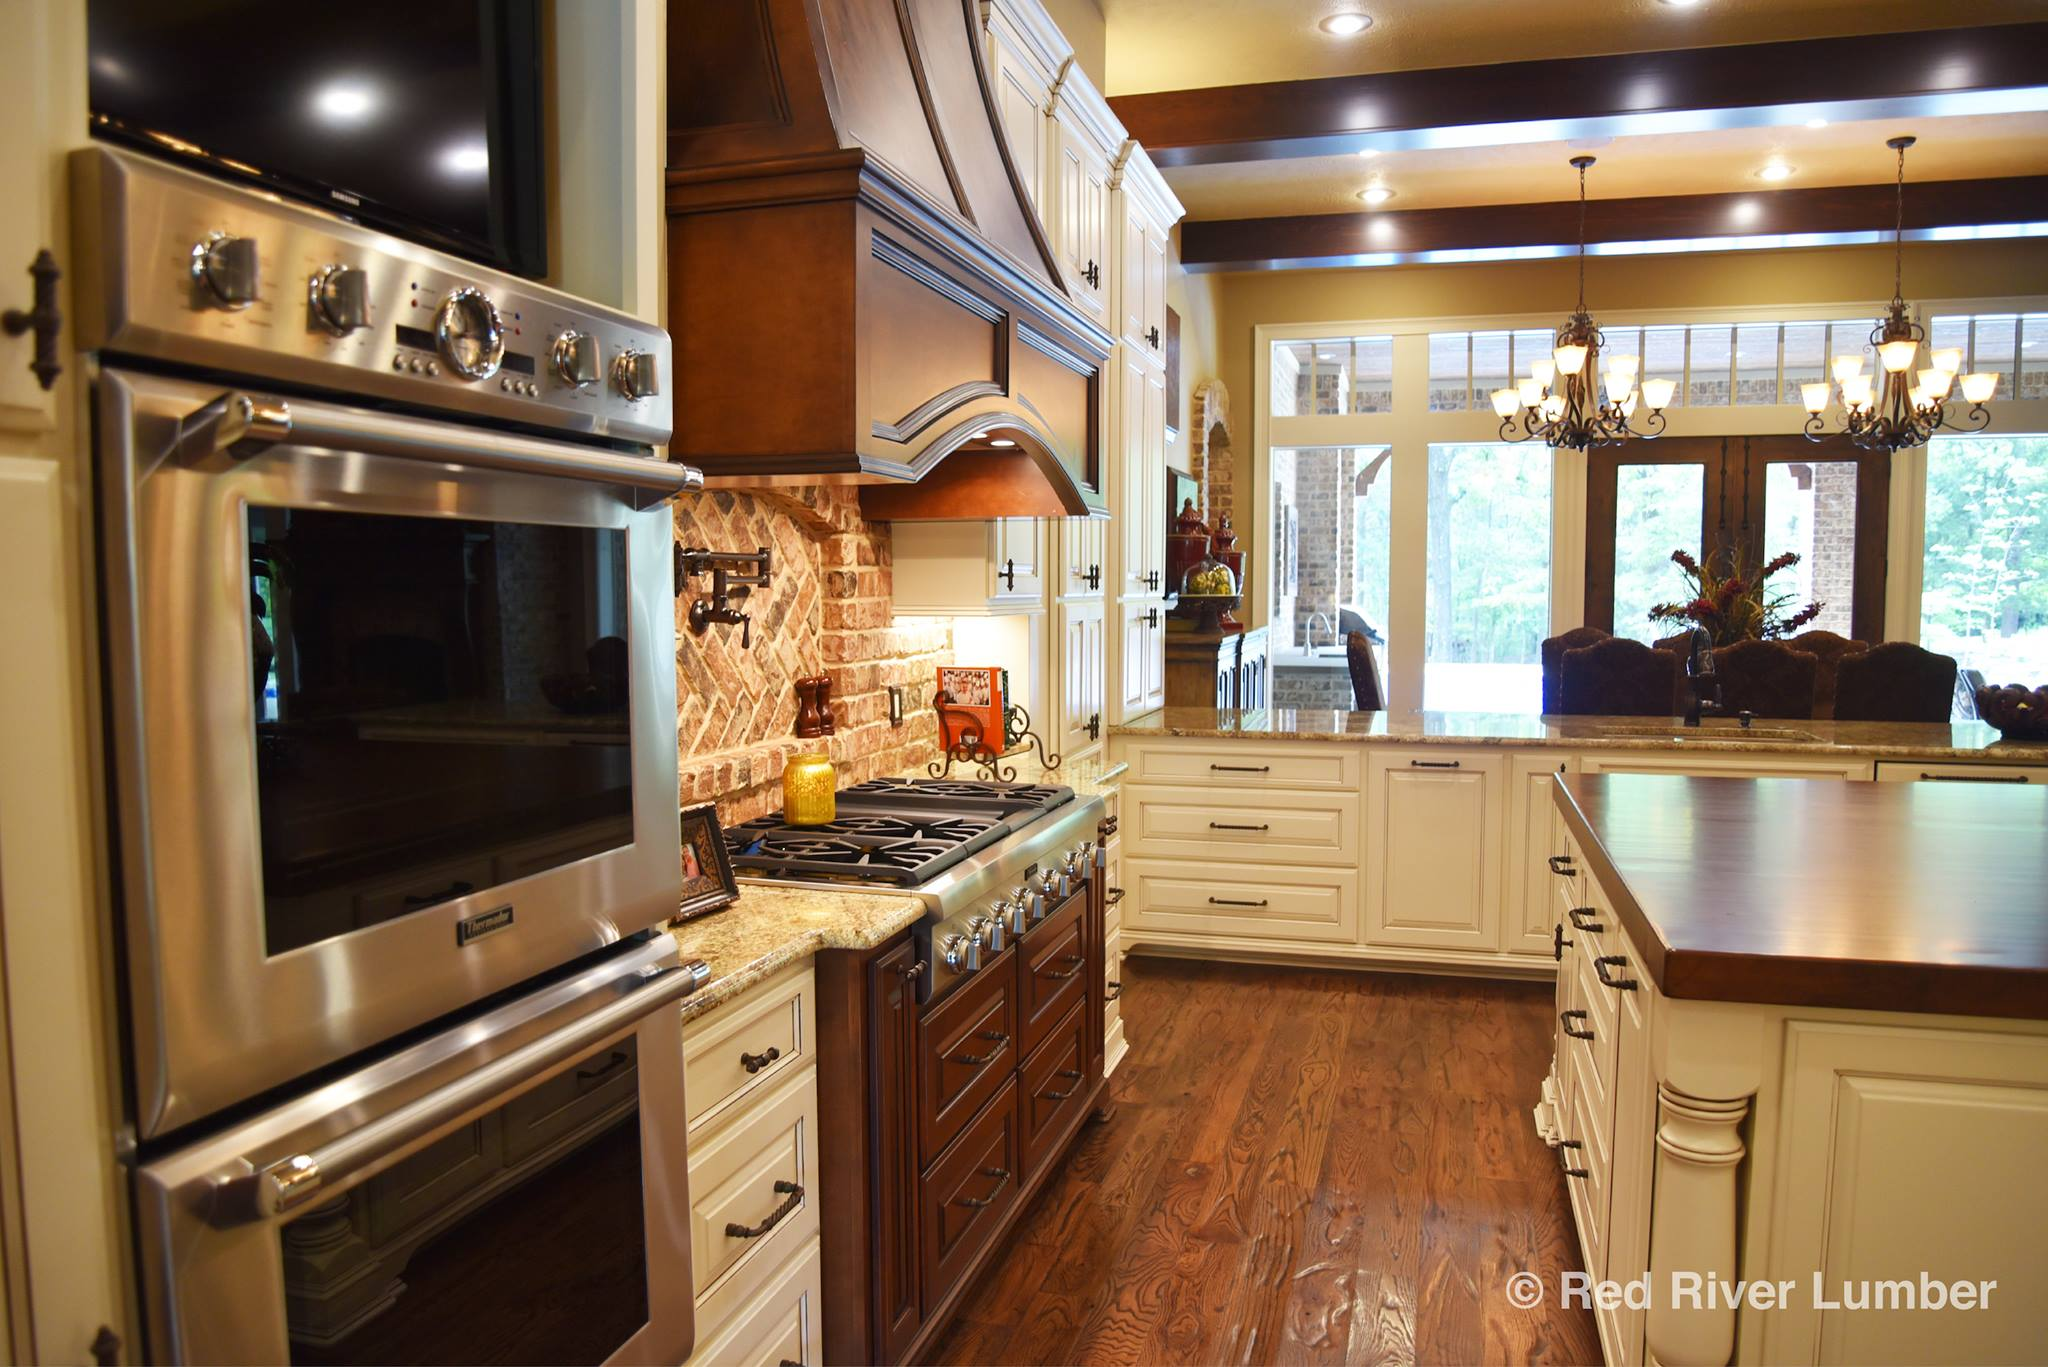 We supplied the  Thermador 30-inch Double Oven, Thermador 48-Inch Gas Rangetop, and Siena Beige Granite Countertops.